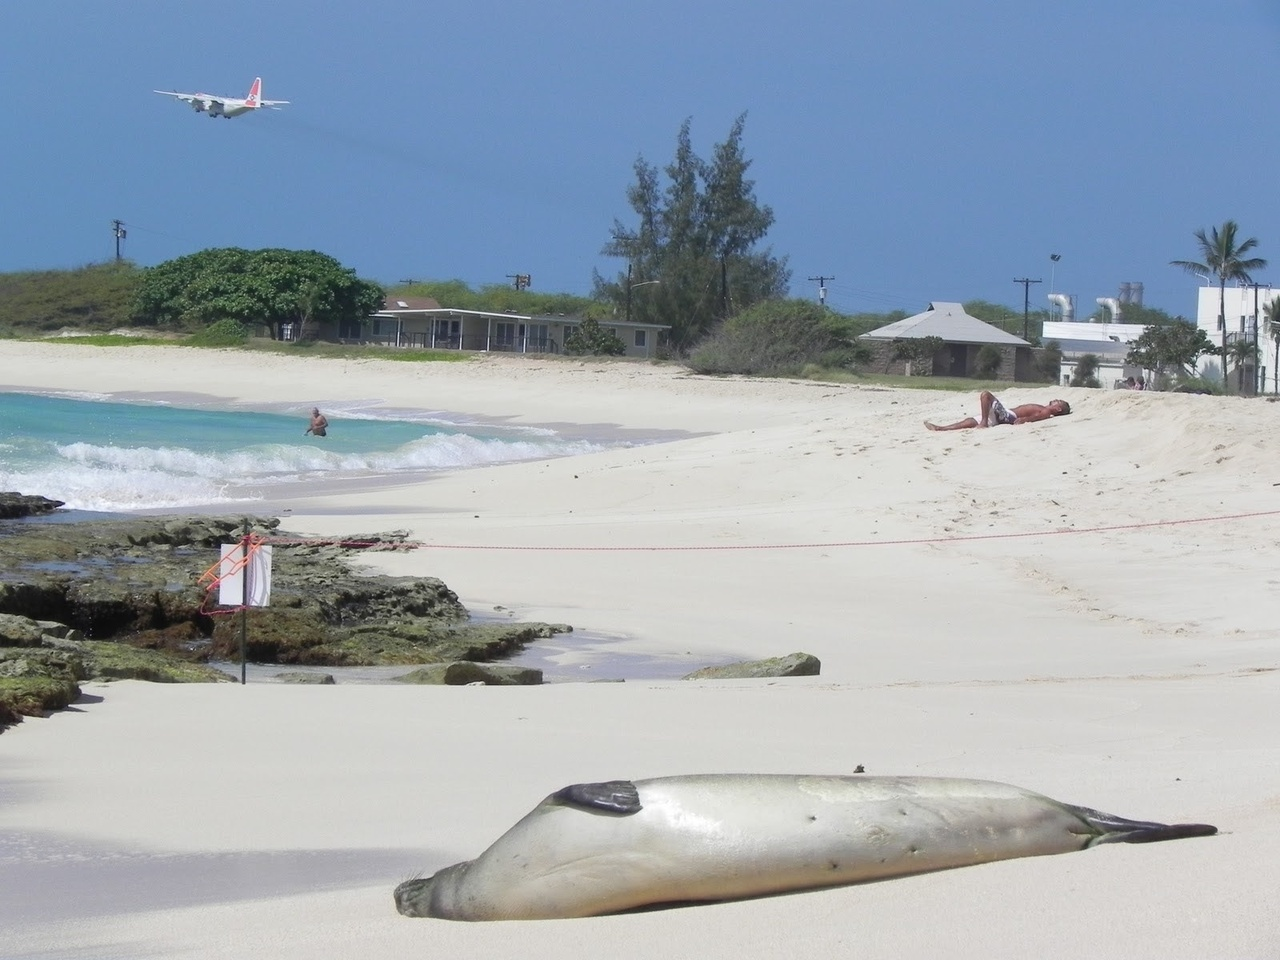 Hawaiian monk seal on beach, person in water in background, plane flying overhead.